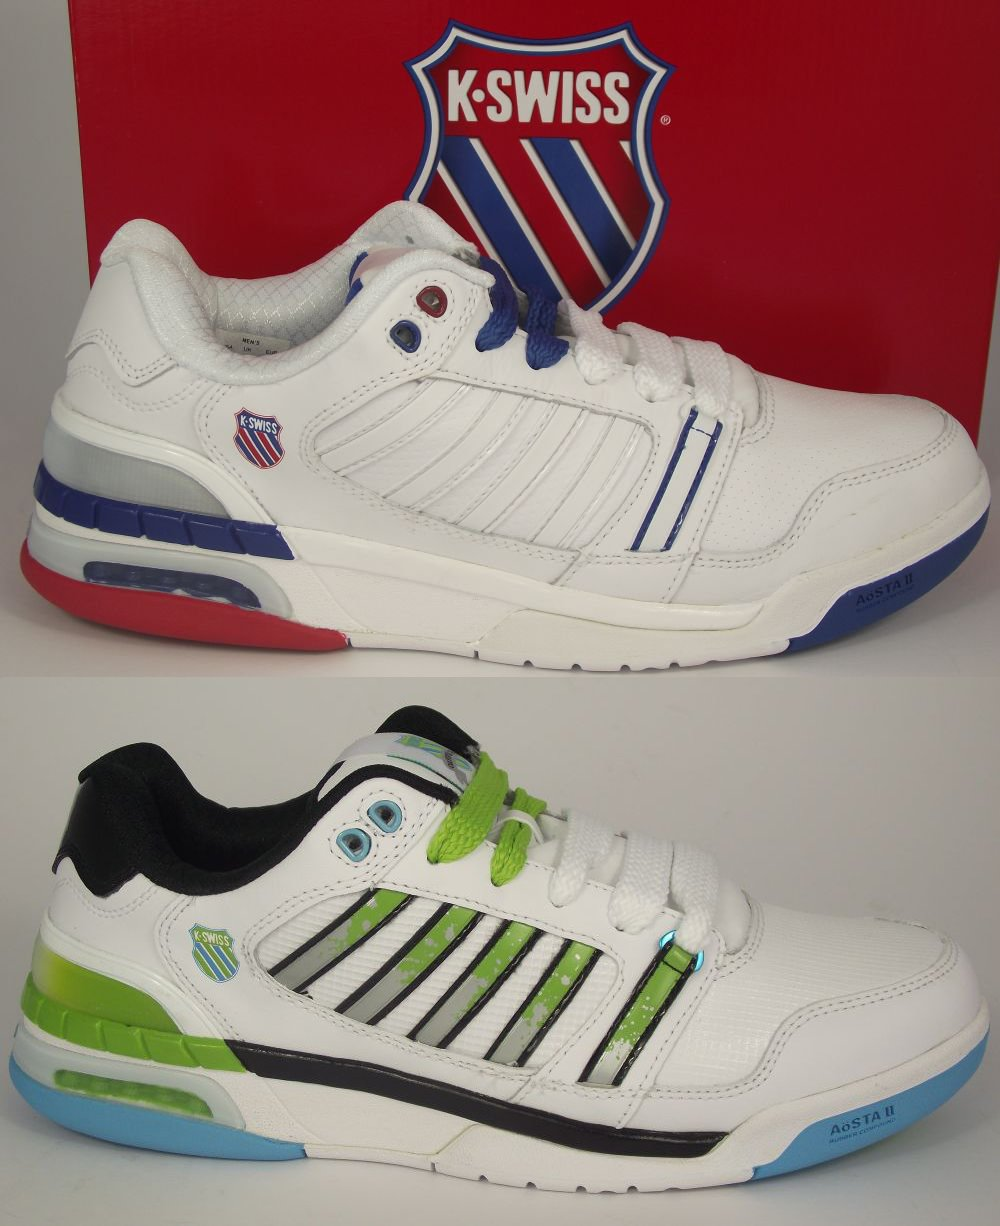 k swiss shoes olx venezuela vehiculos en reparacion